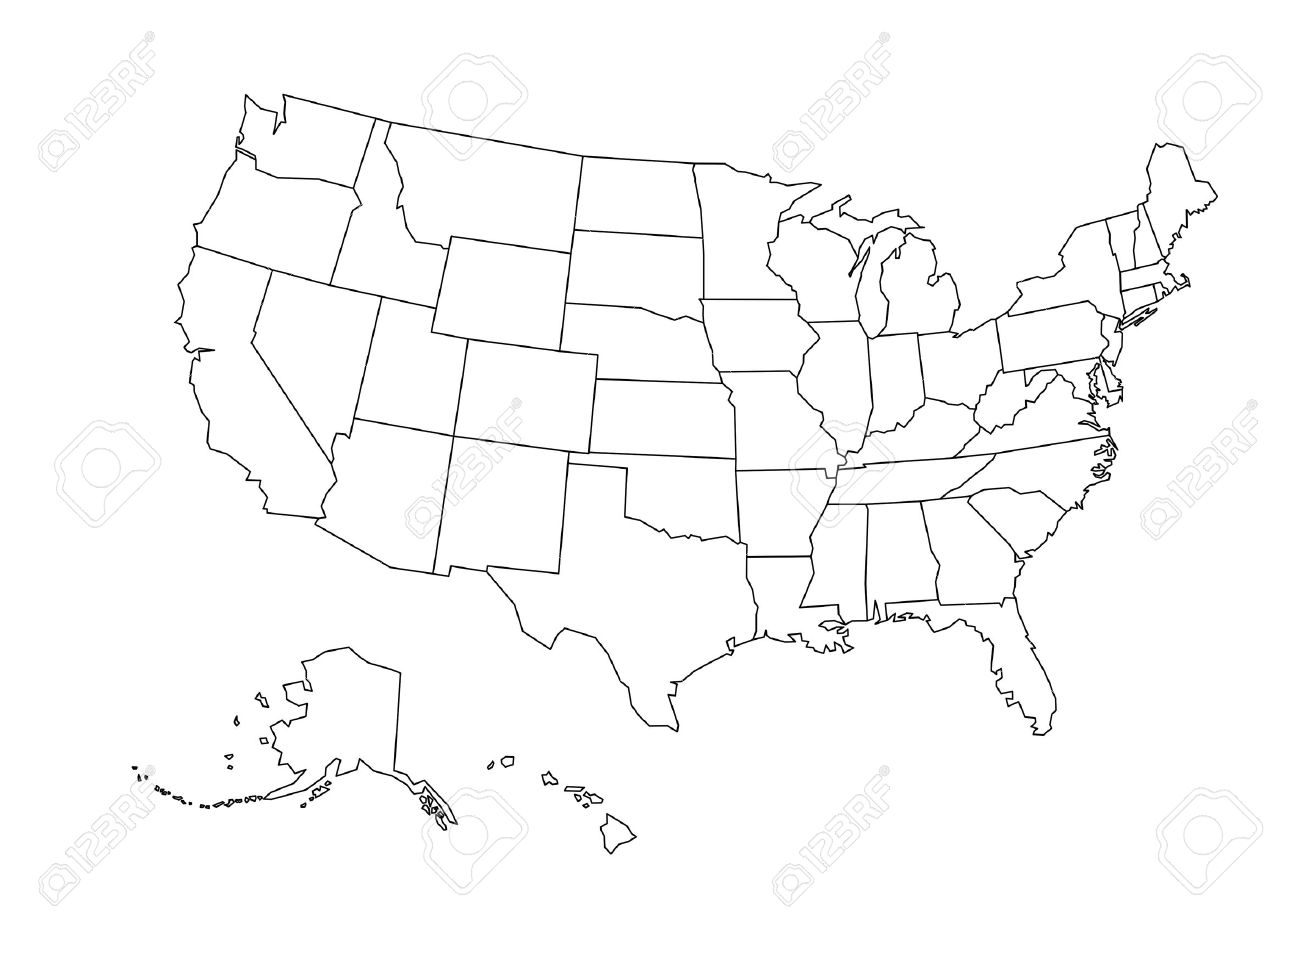 Geography Blog Outline Maps United States - Us vector map